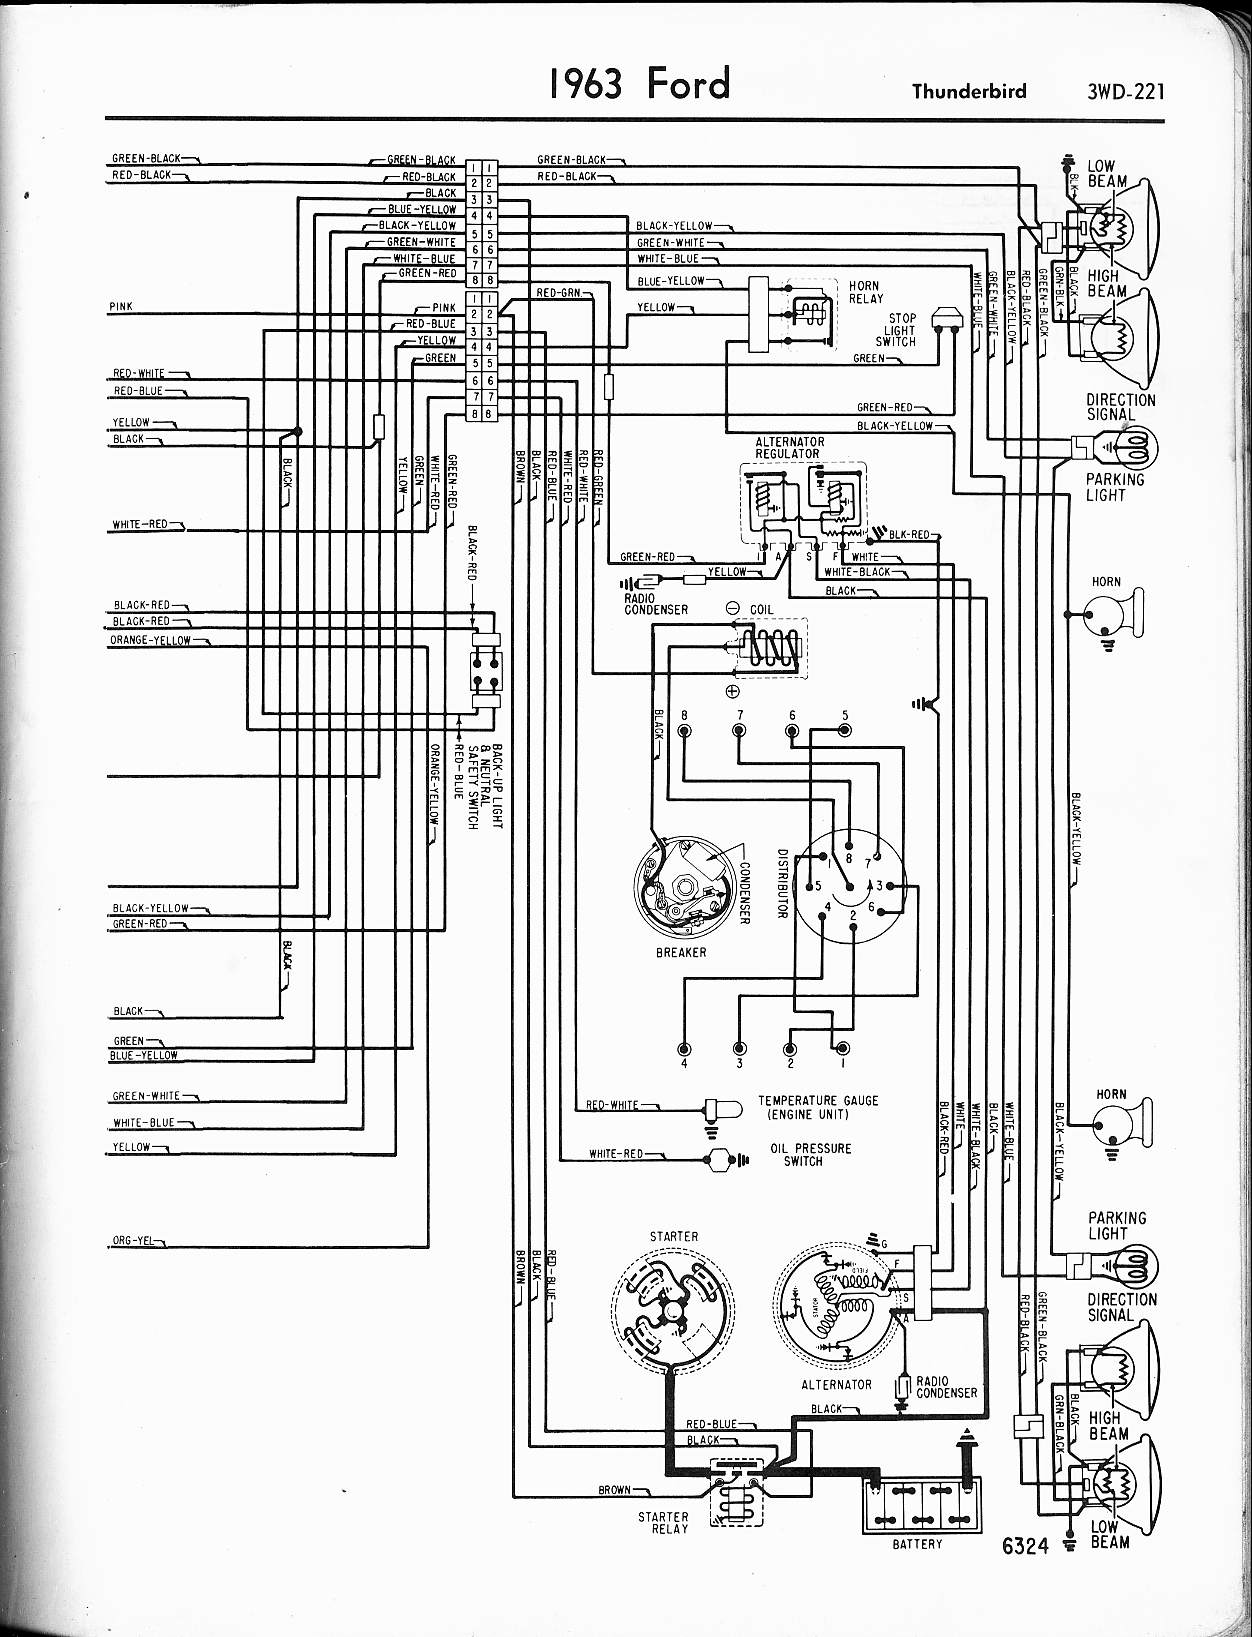 1979 Ford Thunderbird Engine Wiring Diagram Will Be 1966 Truck Ignition 1956 Schematic Just Data Rh Ag Skiphire Co Uk 1960